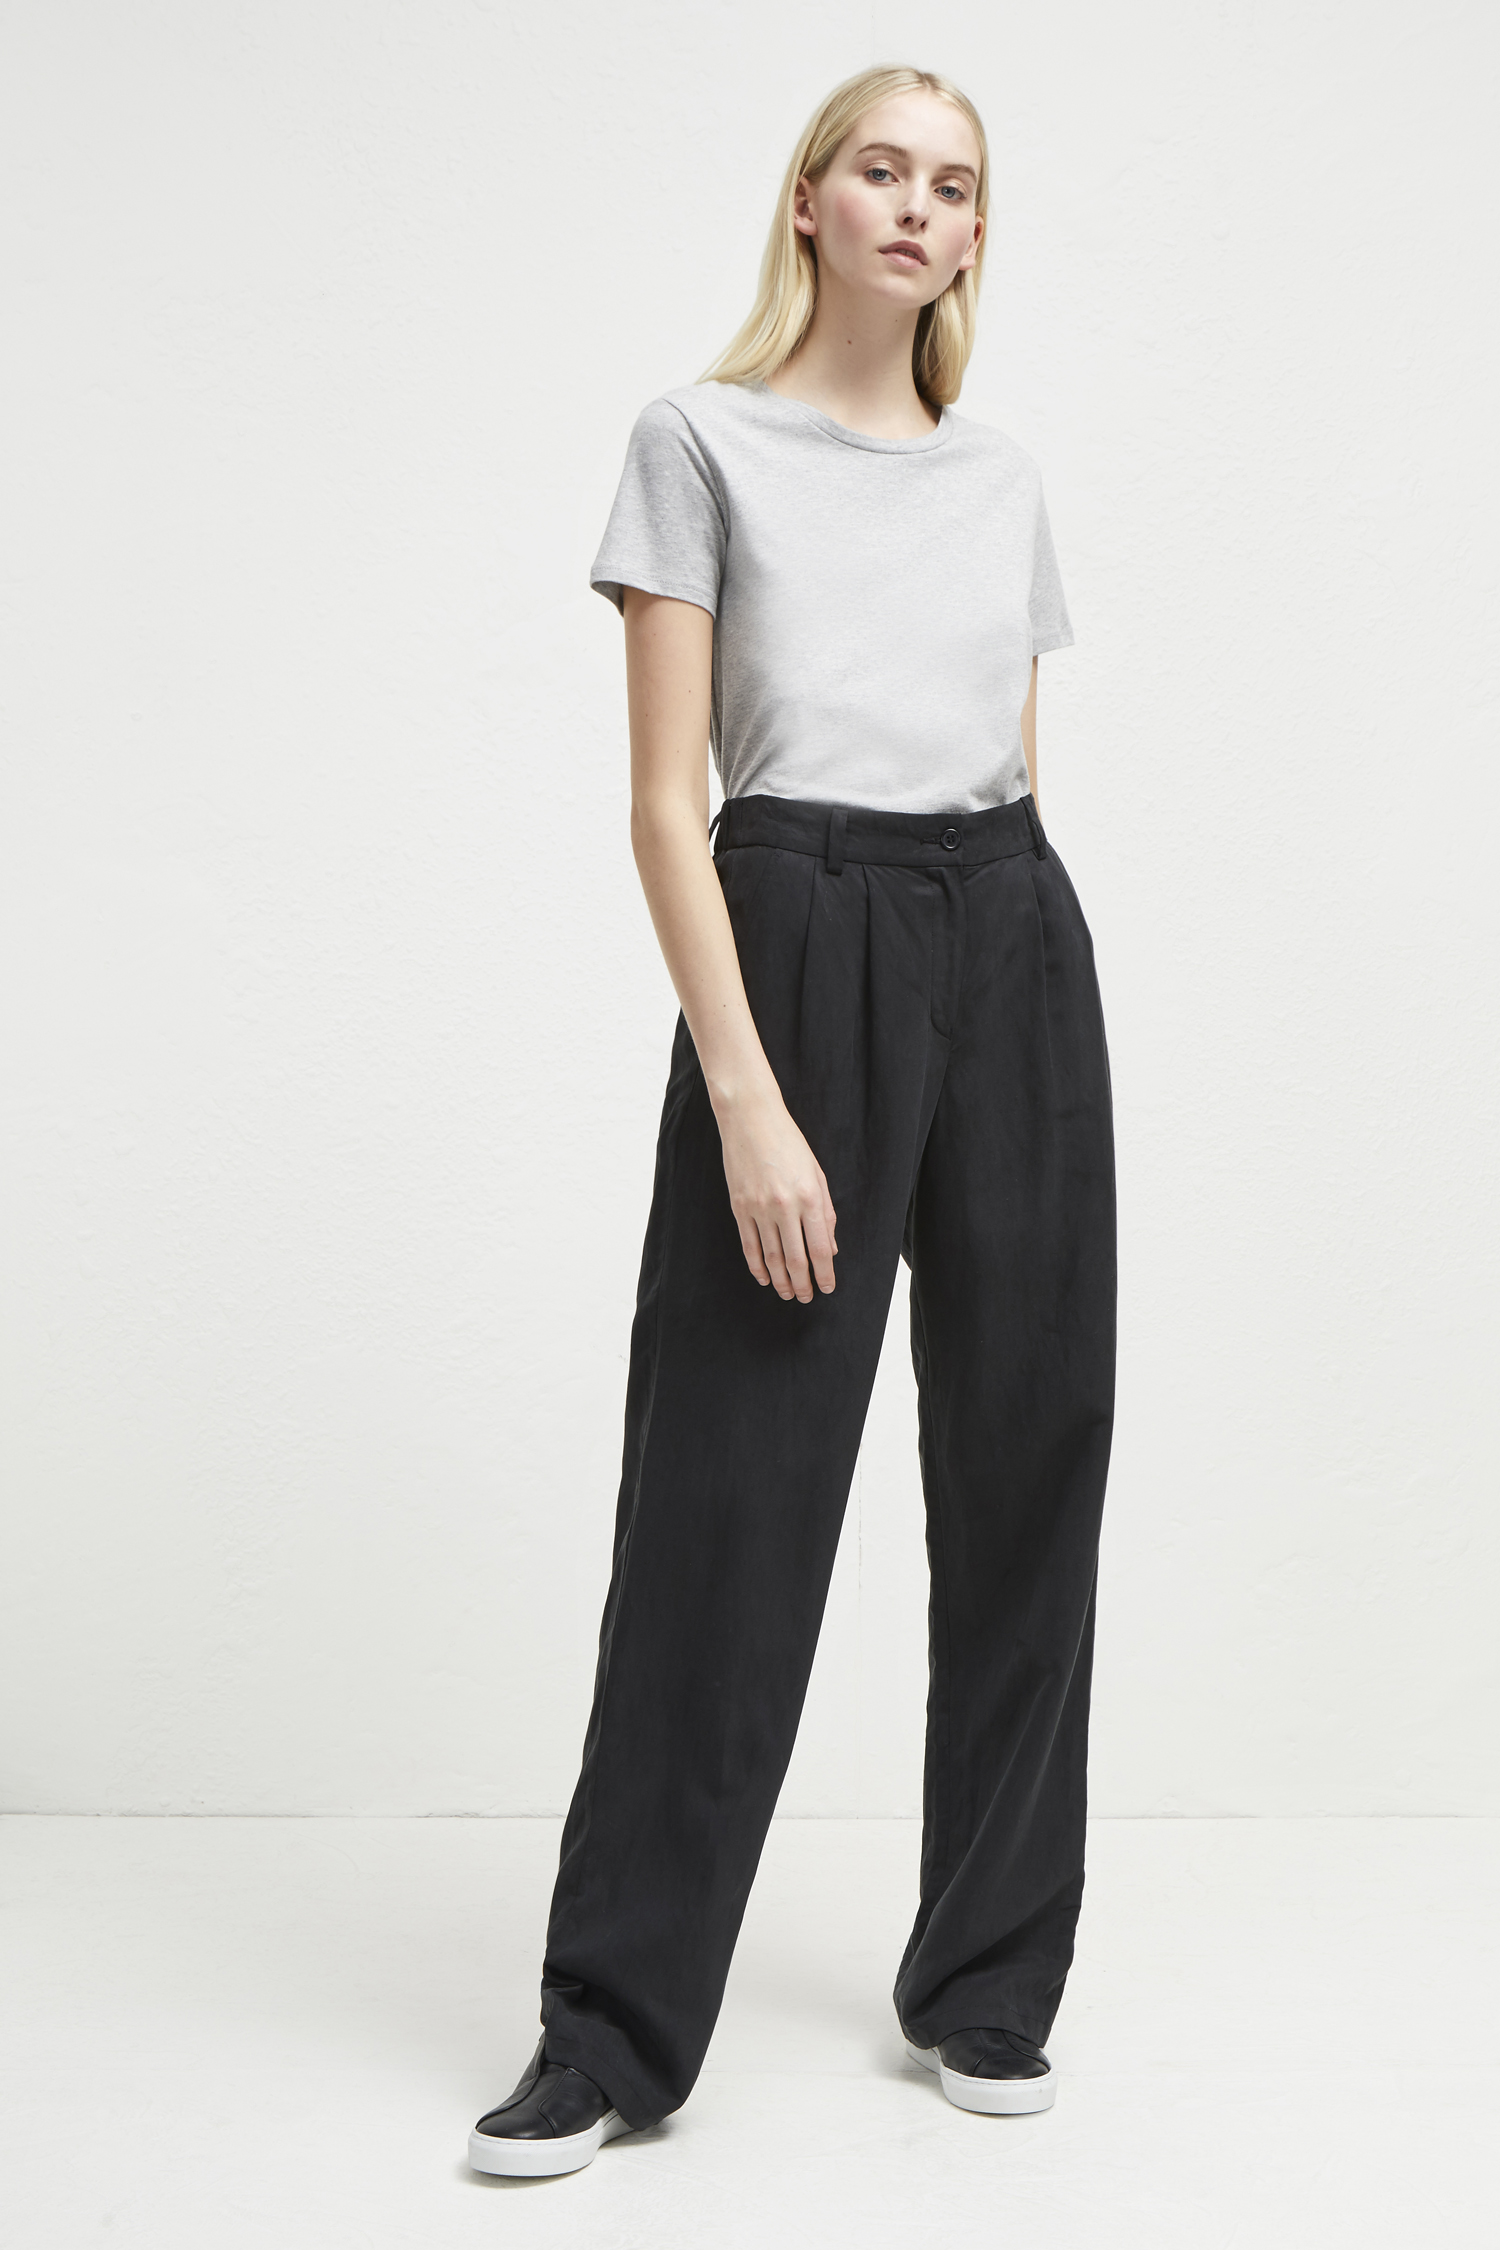 Caspia Linen Pleated Trousers - black